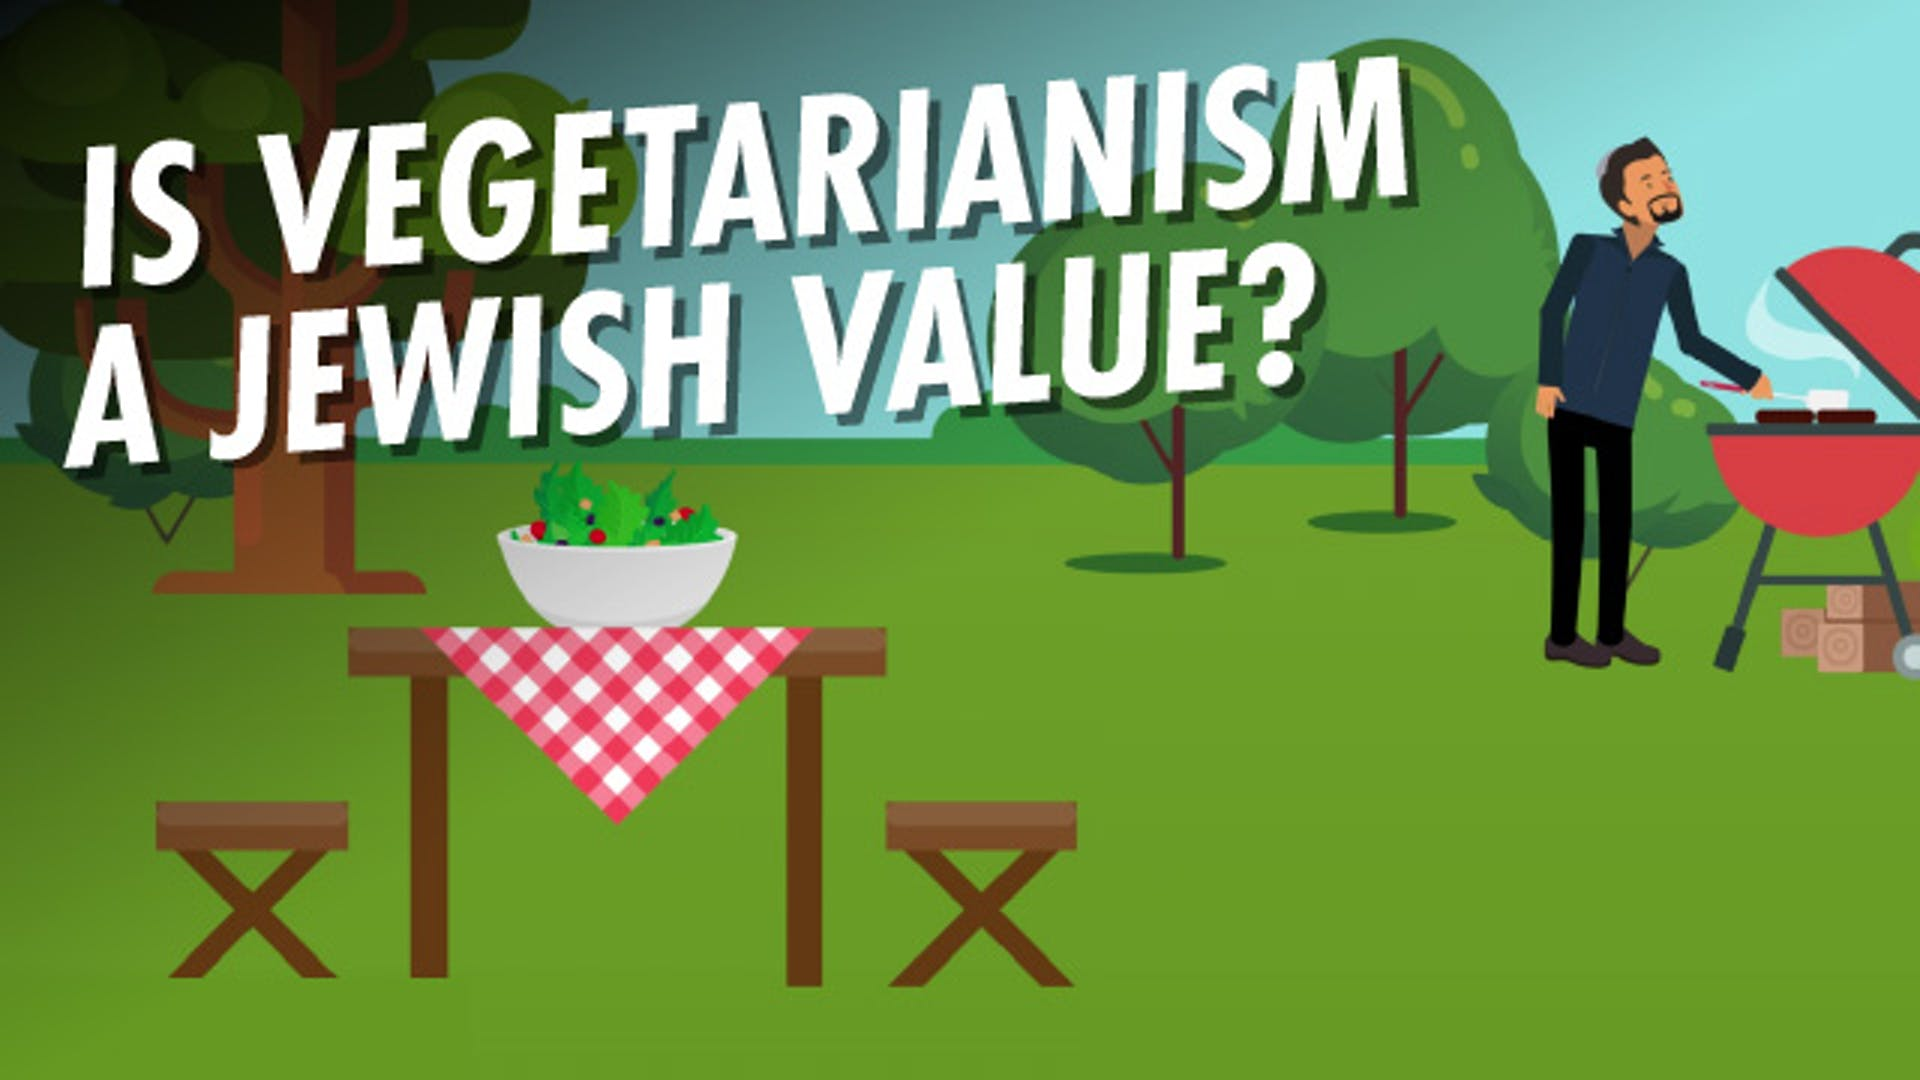 Is Vegetarianism a Jewish Value?